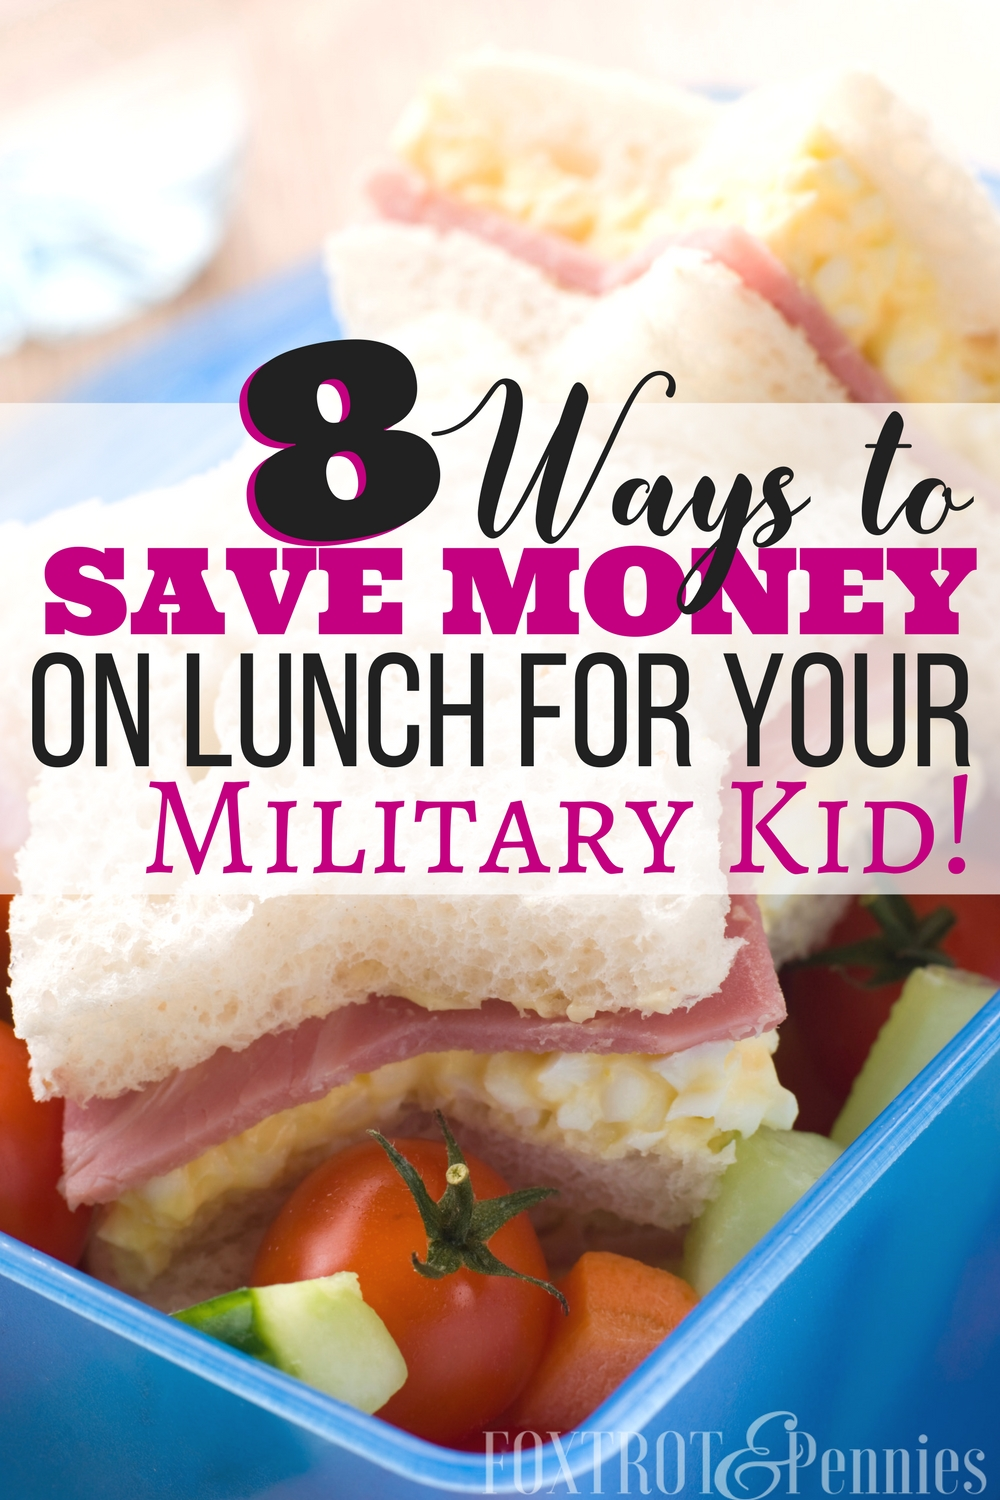 These tips are life saver! Ugh lunch was not only a hassle but it ate up my budget like you wouldn't believe, especially having to make the kids lunches to go! I wanted to save money by avoiding eating out or having them buy lunch at school but I couldn't see how to do it! This article is perfect and really helps me find ways to save money on groceries and use my military resources to cut cost on lunches for my military kid! Awesome!